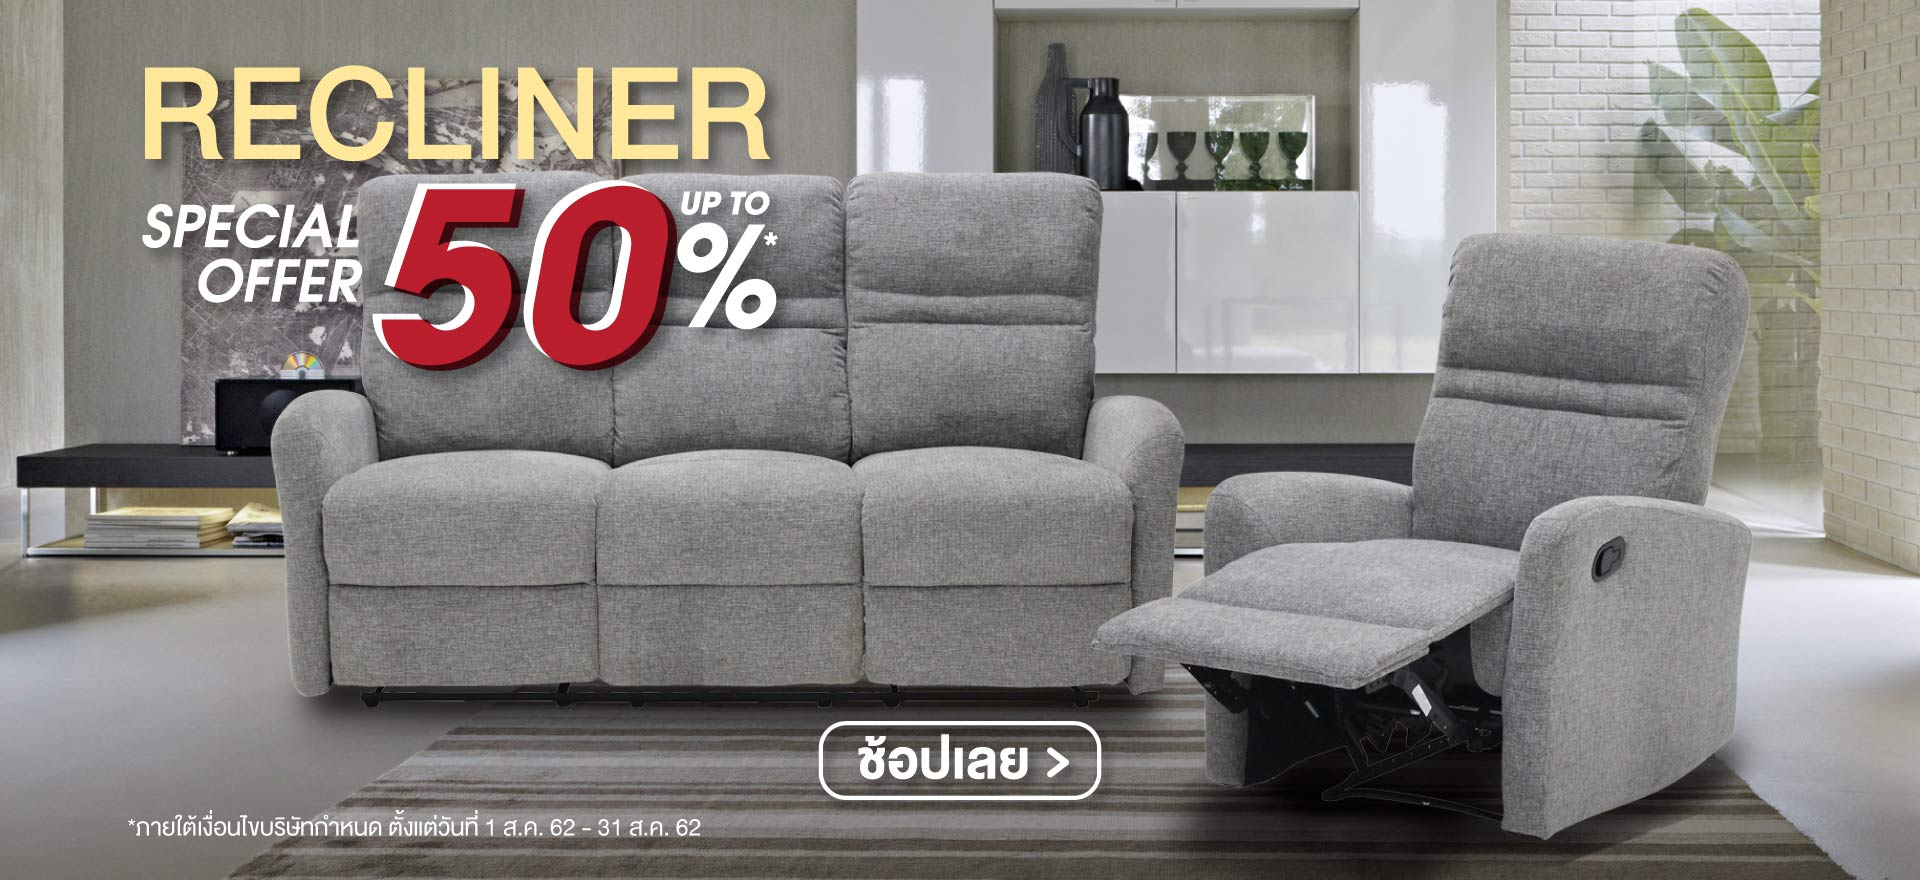 RECLINER SPECIAL OFFER UP TO 50%